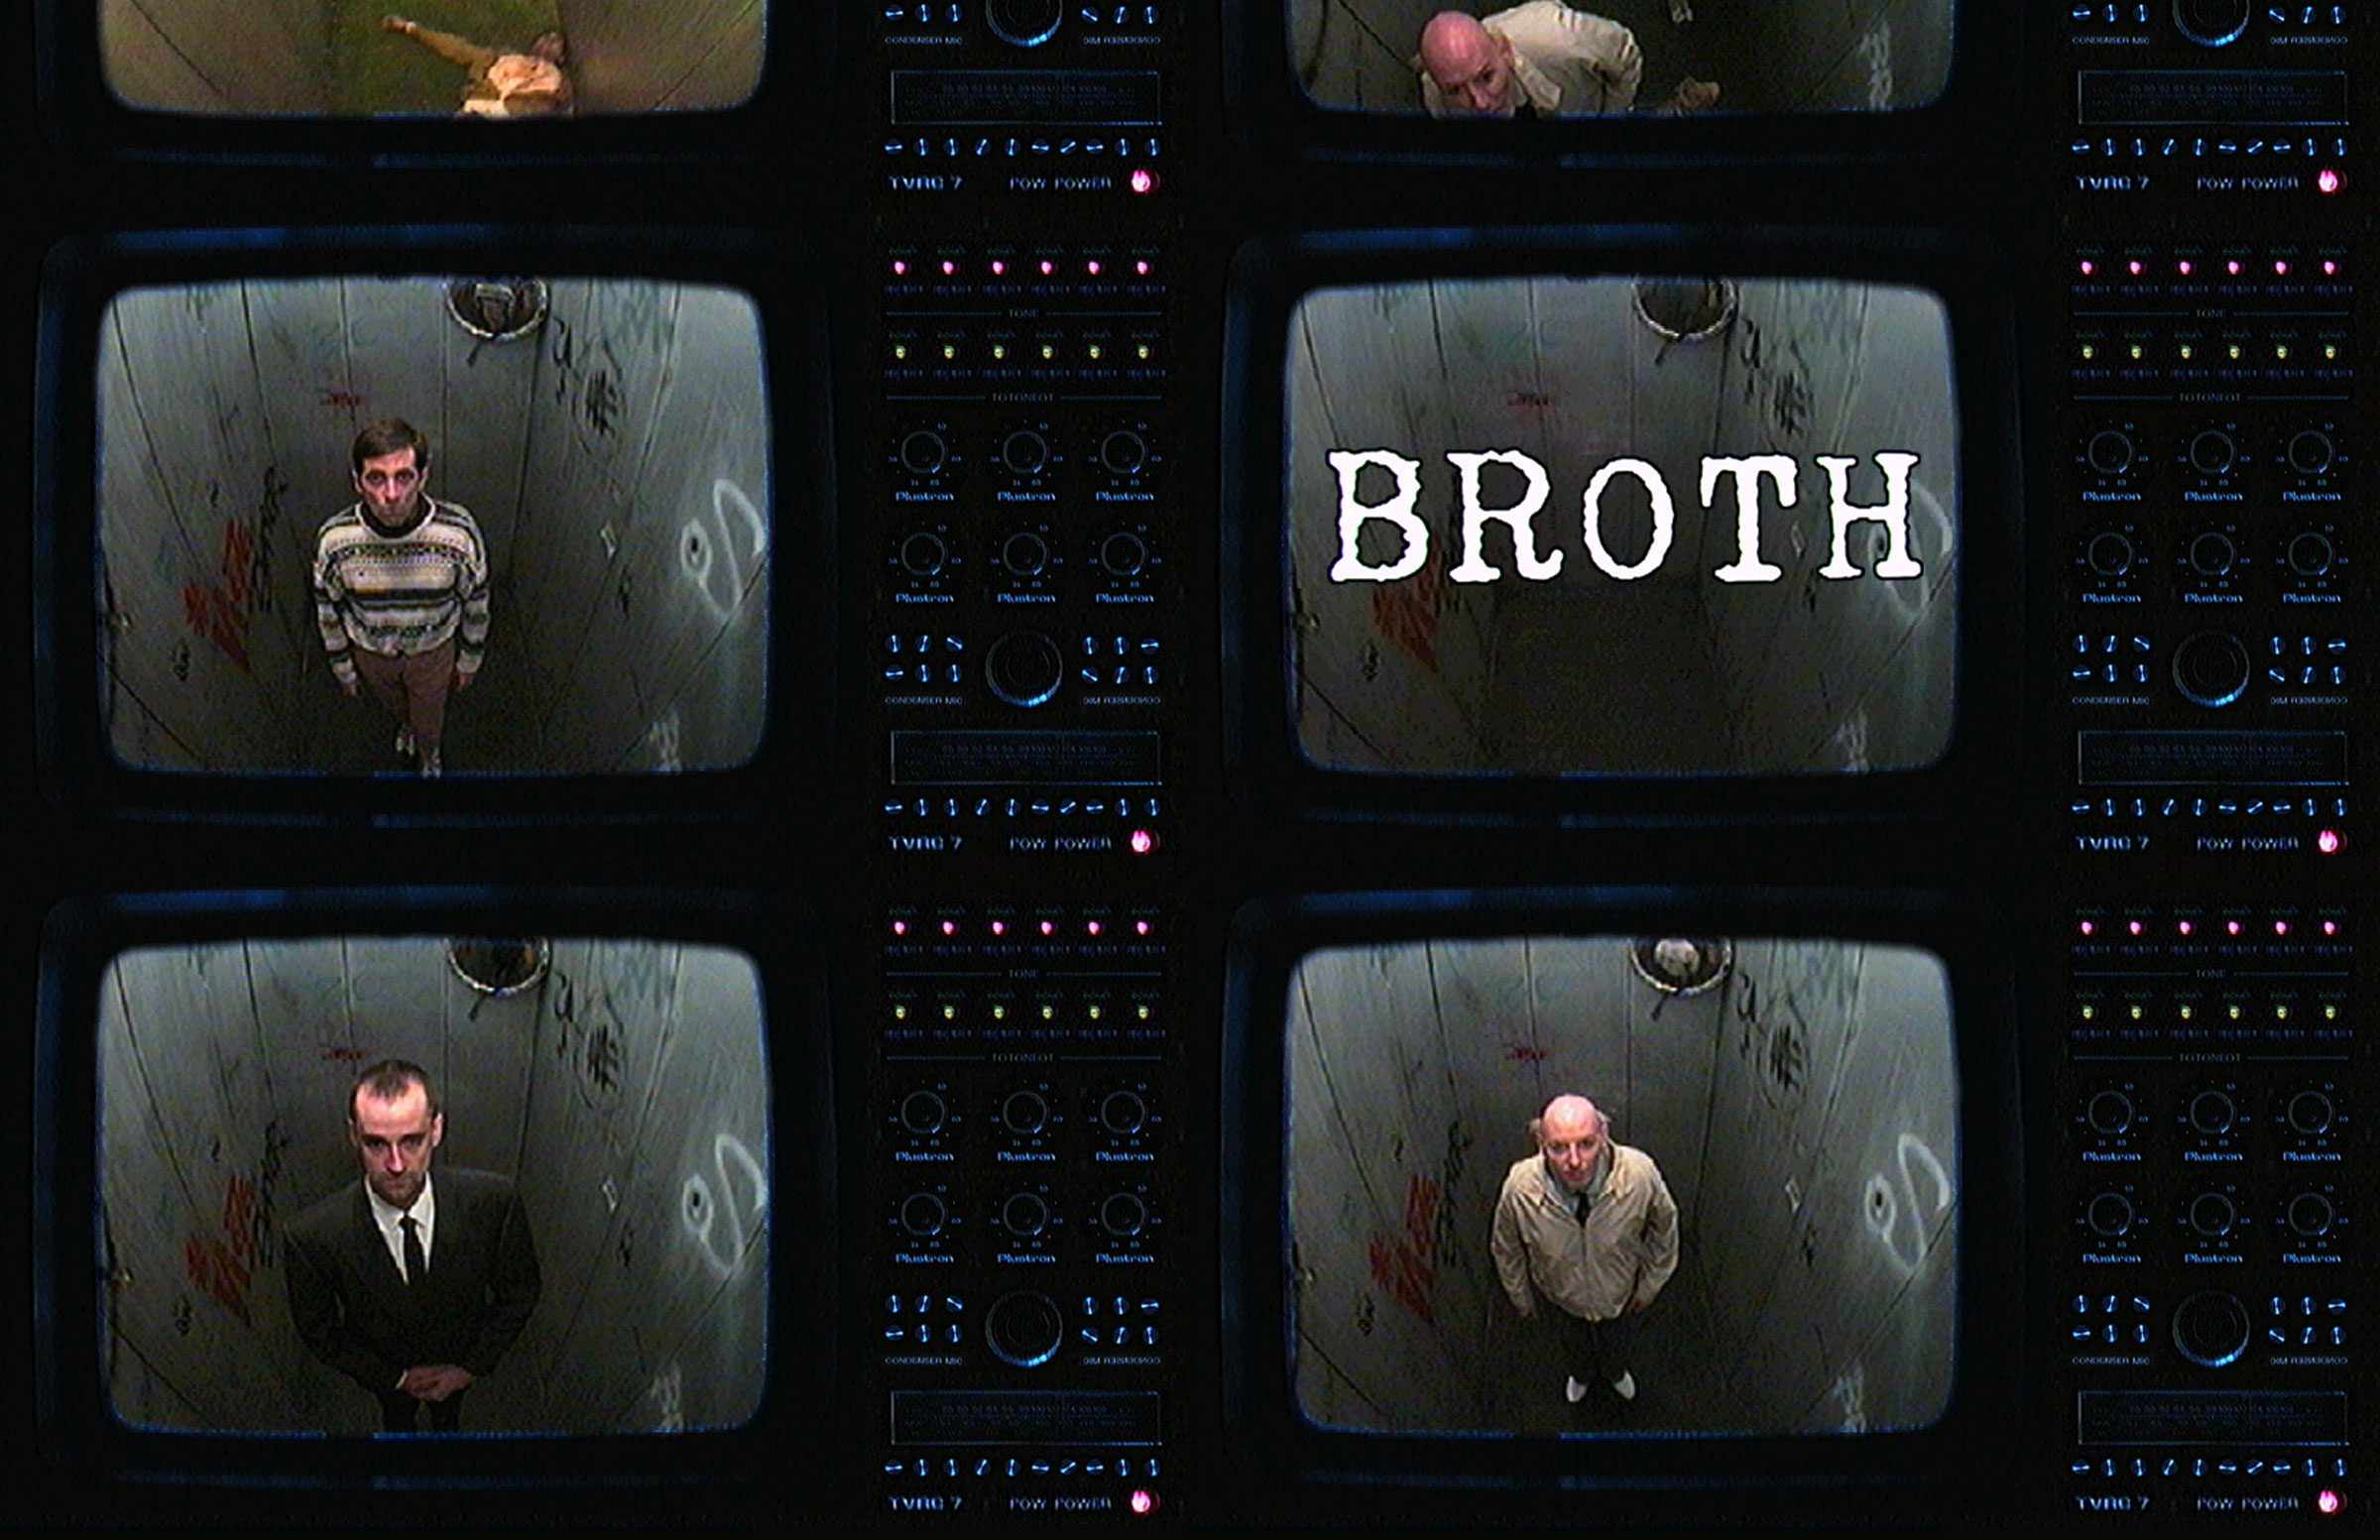 1997-06-12-SF-Broth-Surveillance-tv01-poster